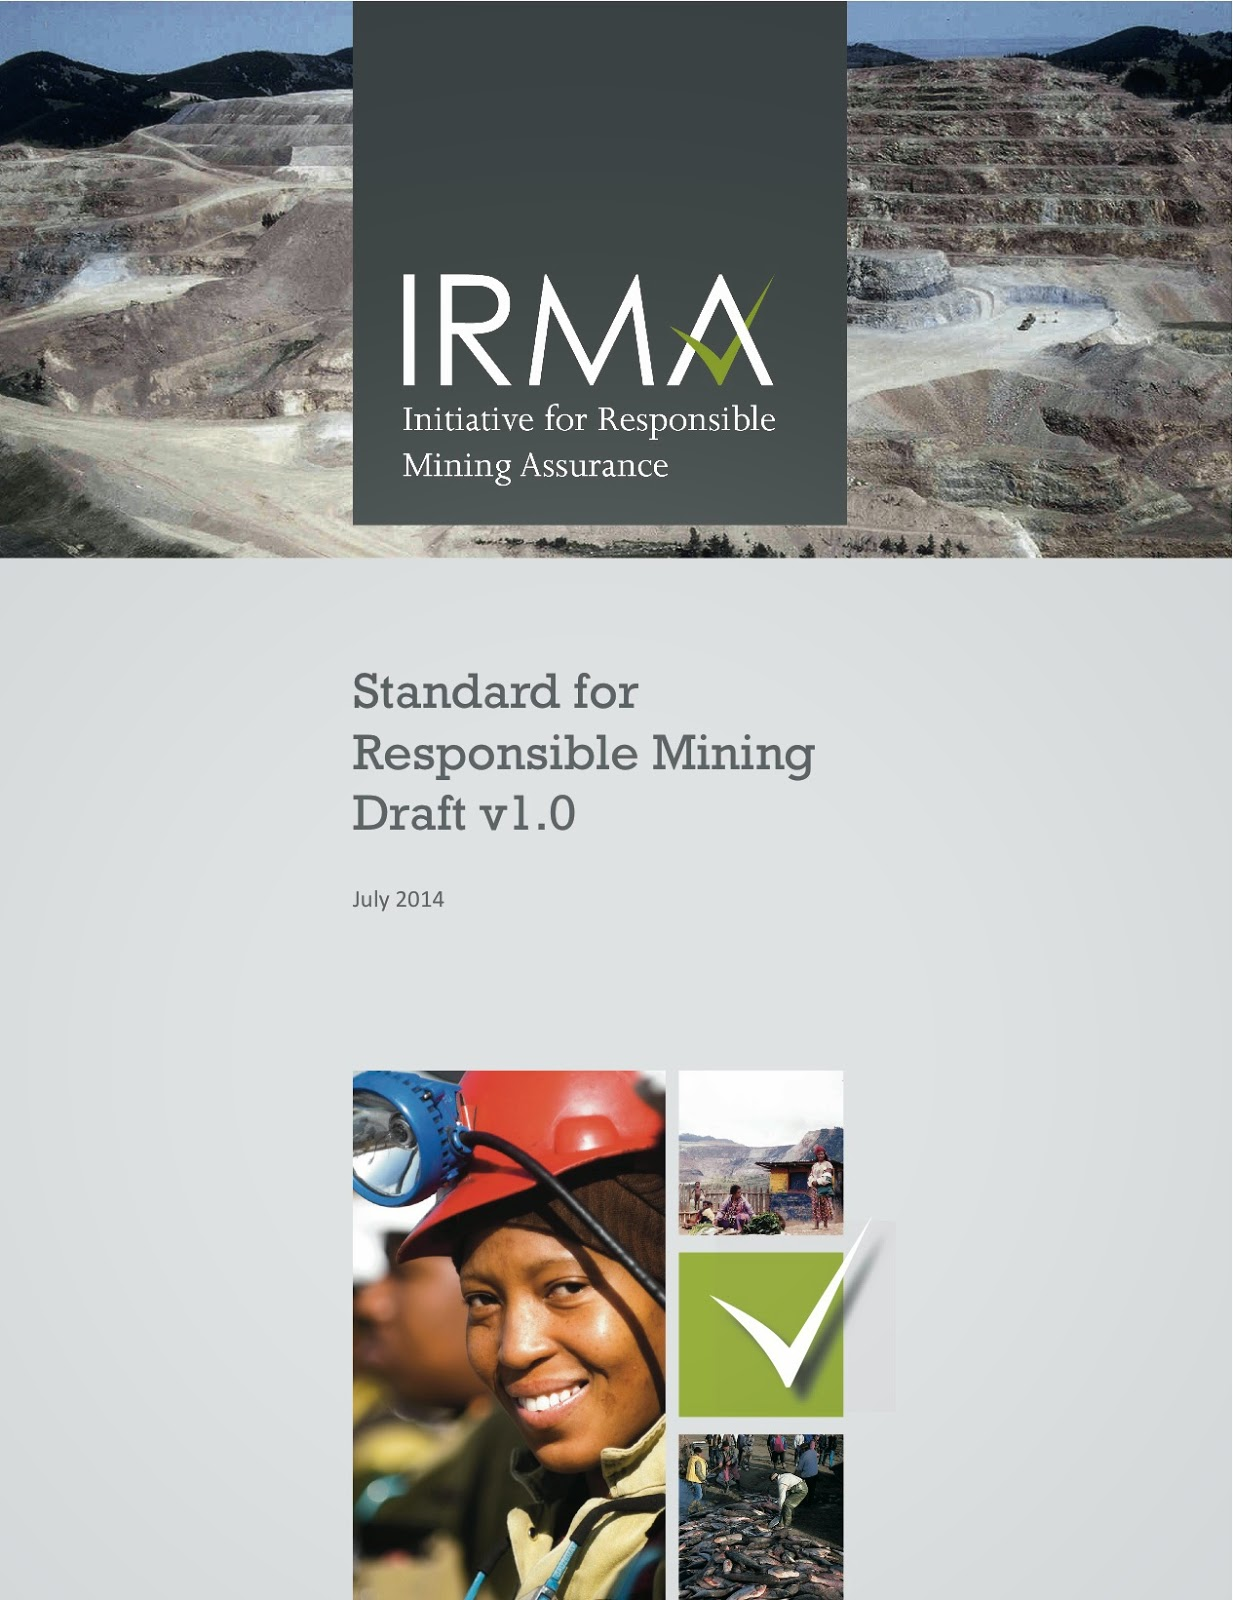 Standard for Responsible Mining